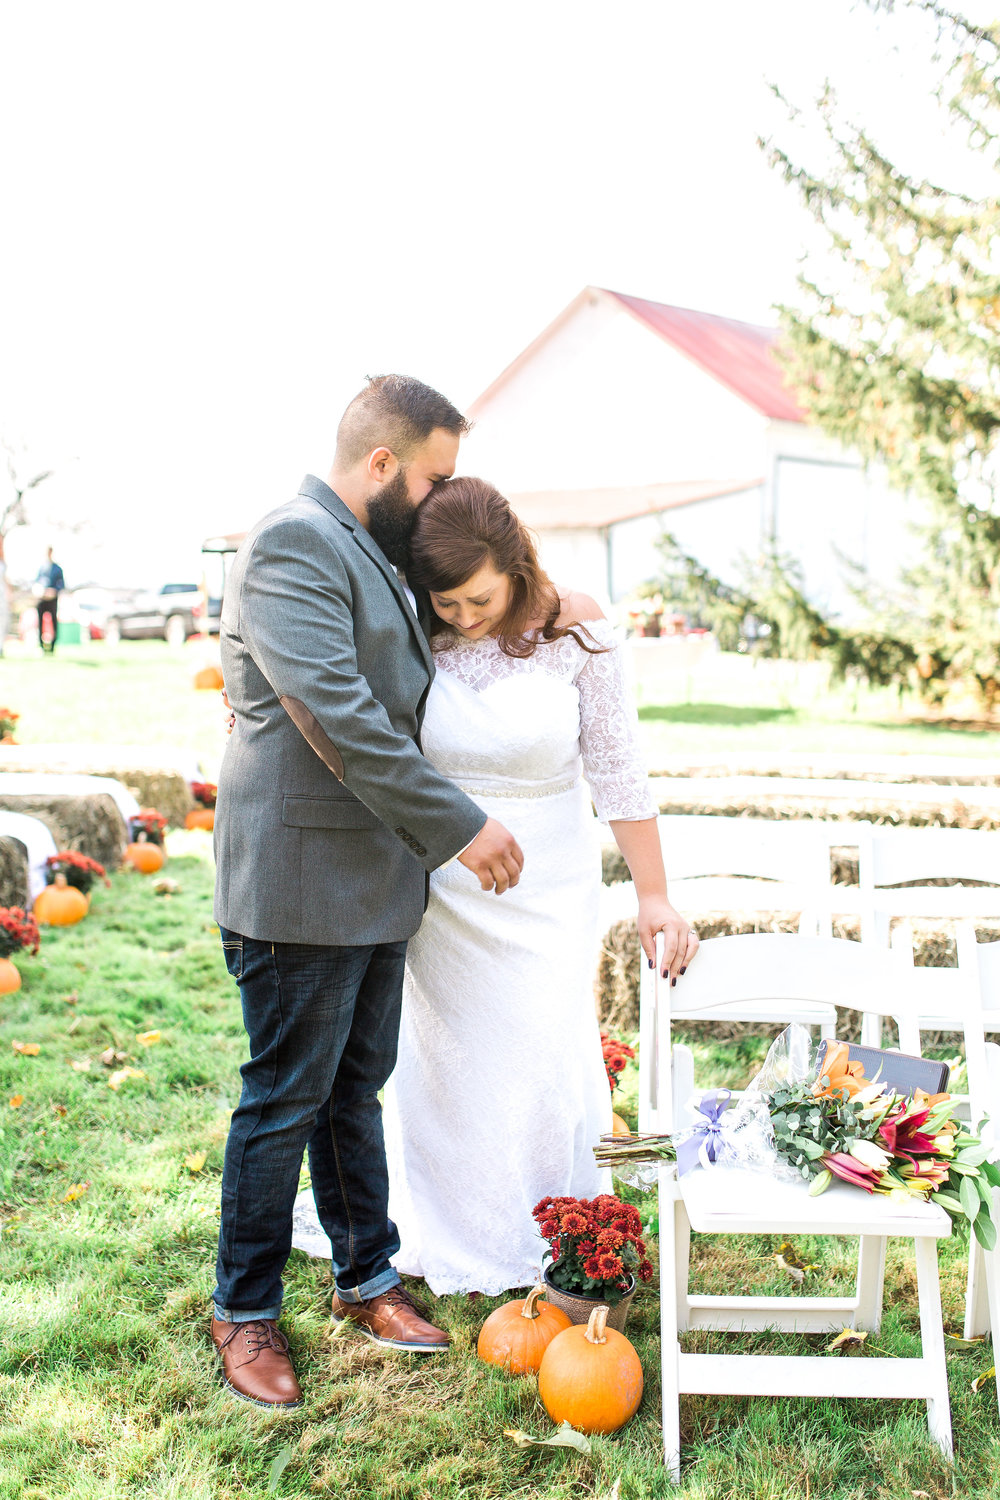 An open letter to the bride without her mom on her wedding day lytle photo co lehigh valley wedding photographer (2).jpg